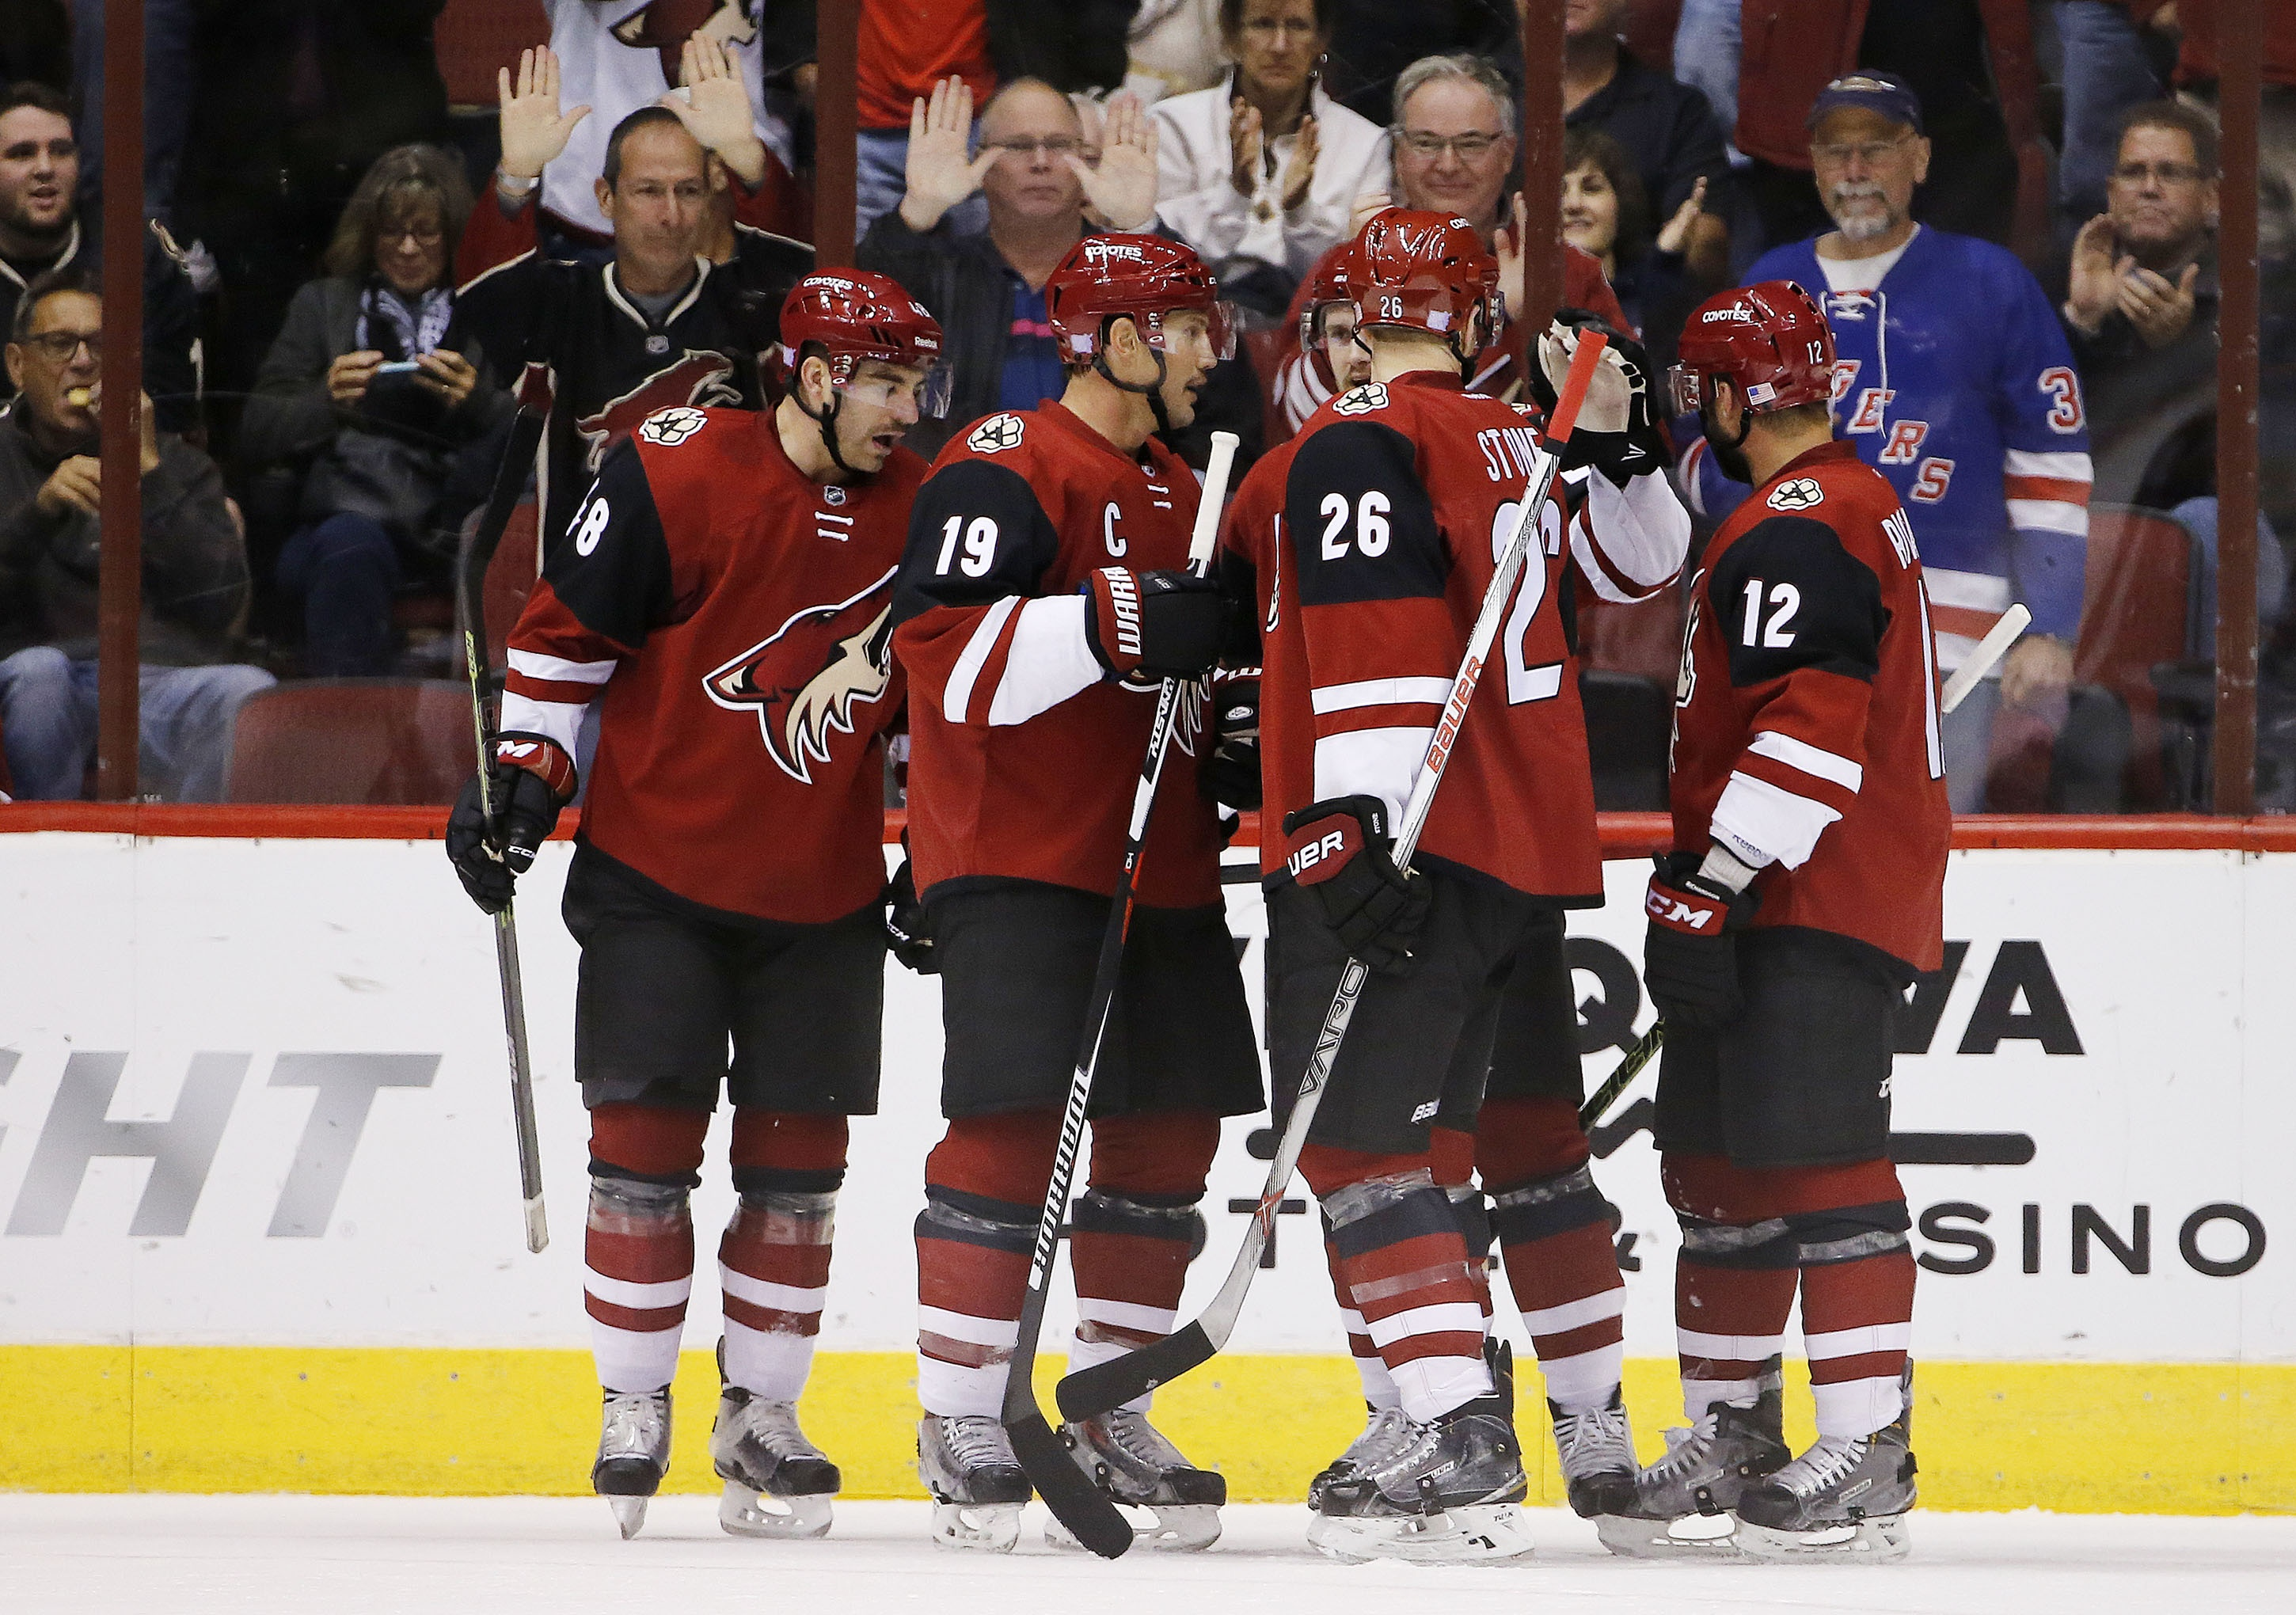 Arizona Coyotes' Oliver Ekman-Larsson, of Sweden, celebrates his goal against the Edmonton Oilers with teammates Jordan Martinook, left, Shane Doan (19), Michael Stone (26) and Brad Richardson (12) during the first period of an NHL hockey game Thursday, N